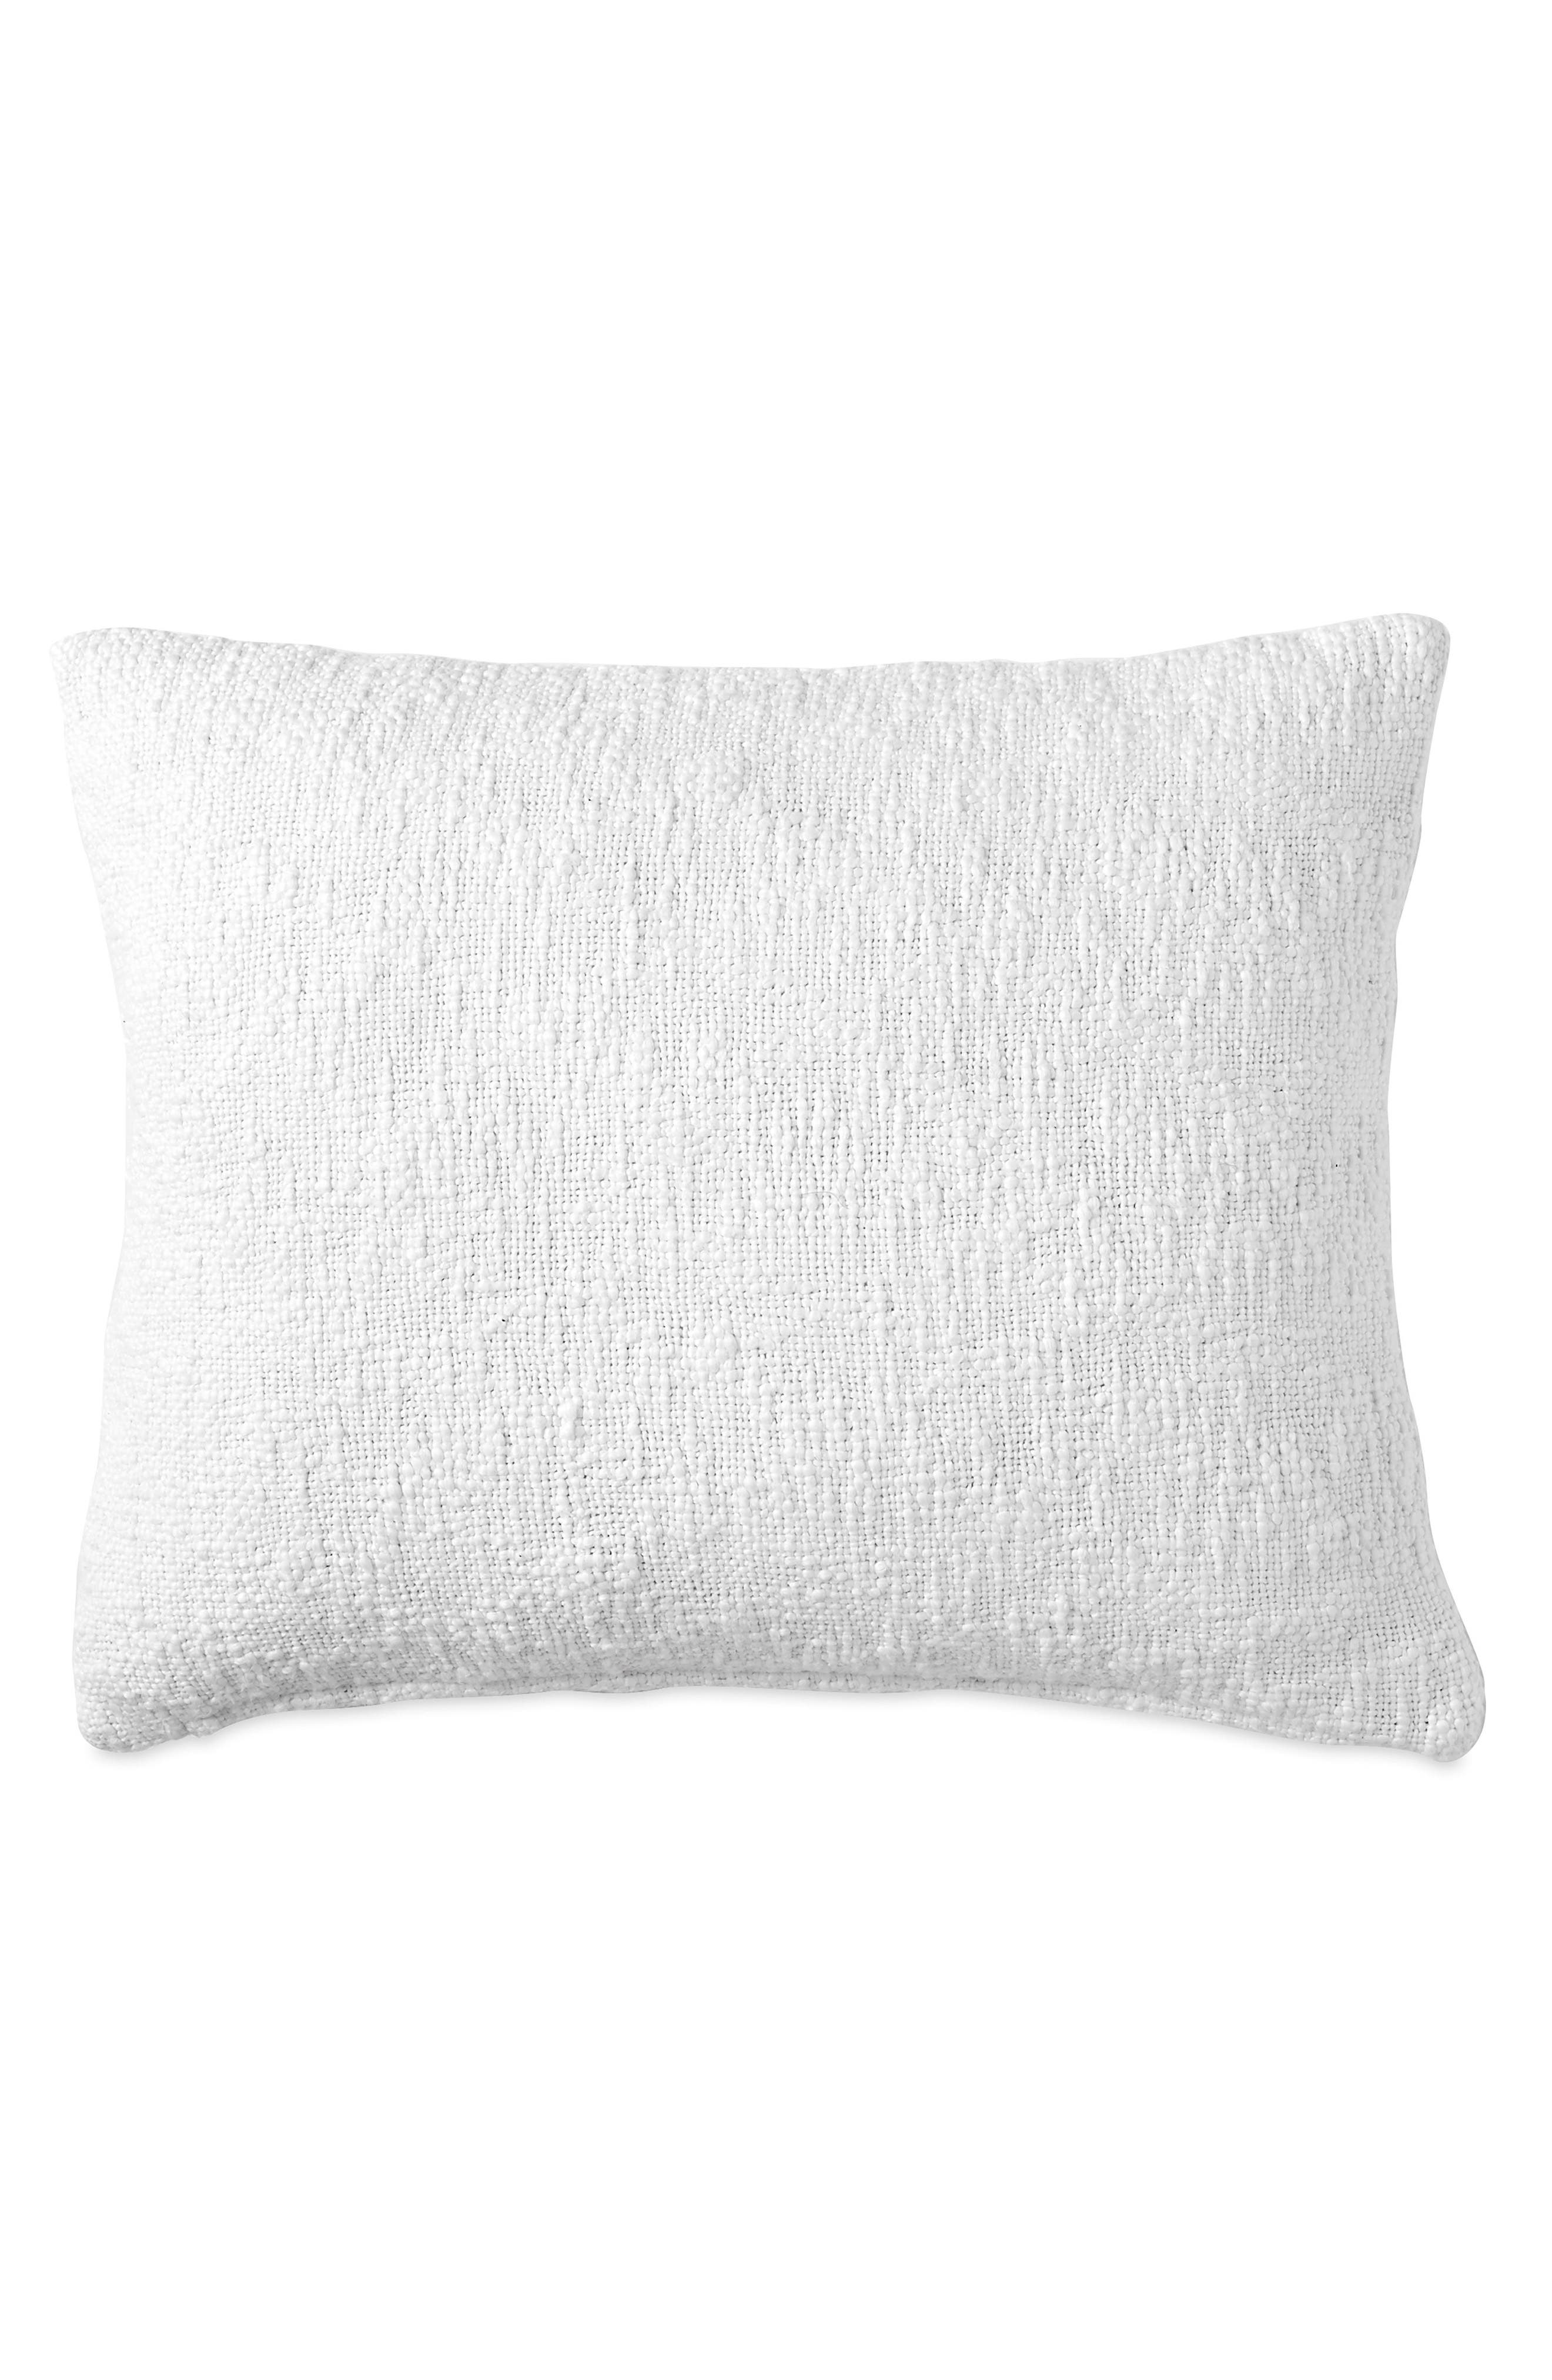 Main Image - DKNY Textured Accent Pillow